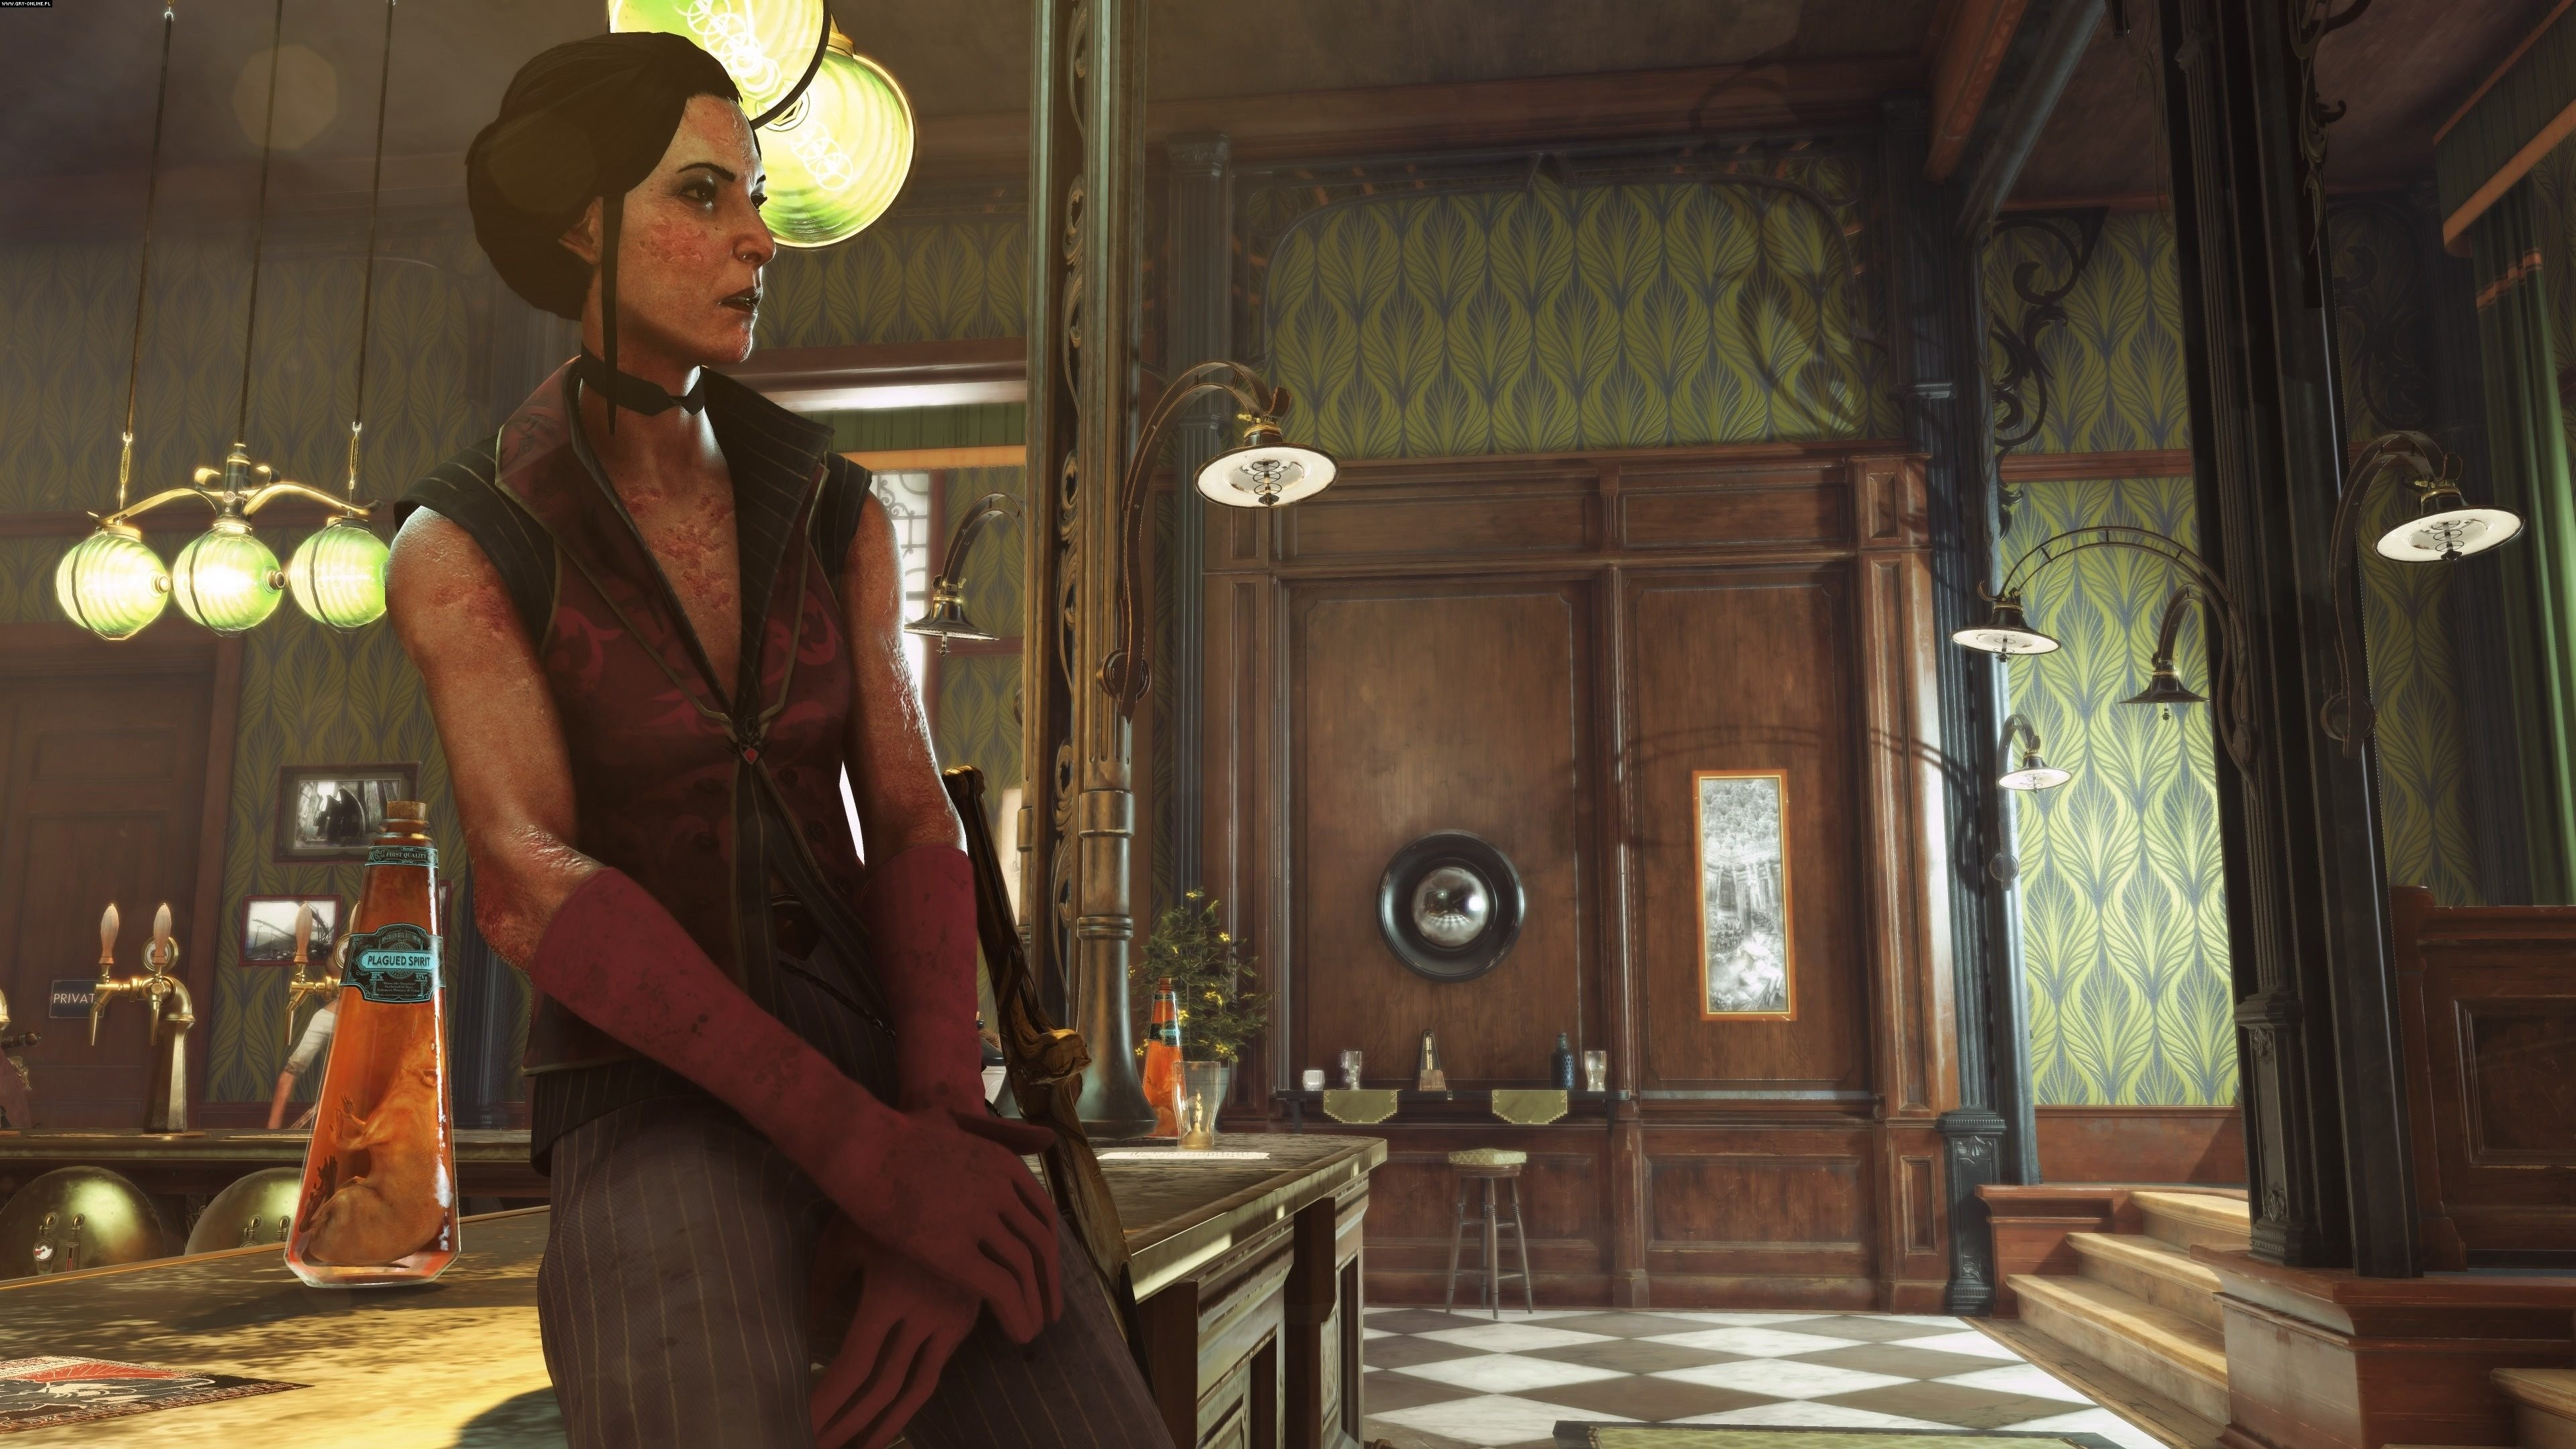 Dishonored: Death of the Outsider PC, PS4, XONE Games Image 1/13, Arkane Studios, Bethesda Softworks